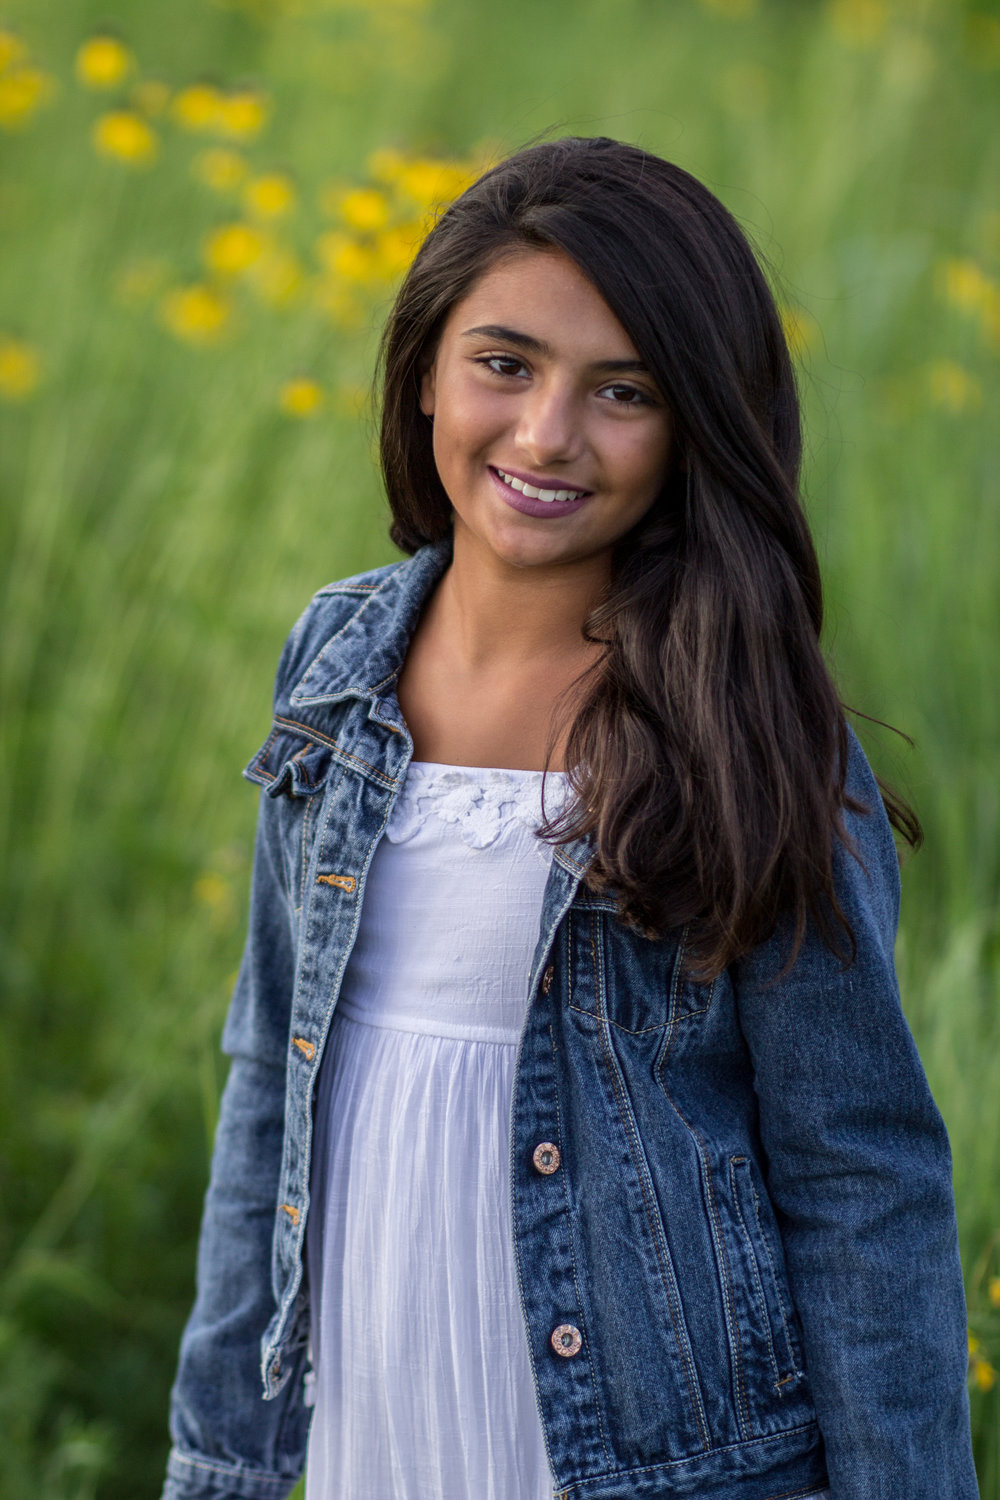 daughter child preteen summer portrait.jpg